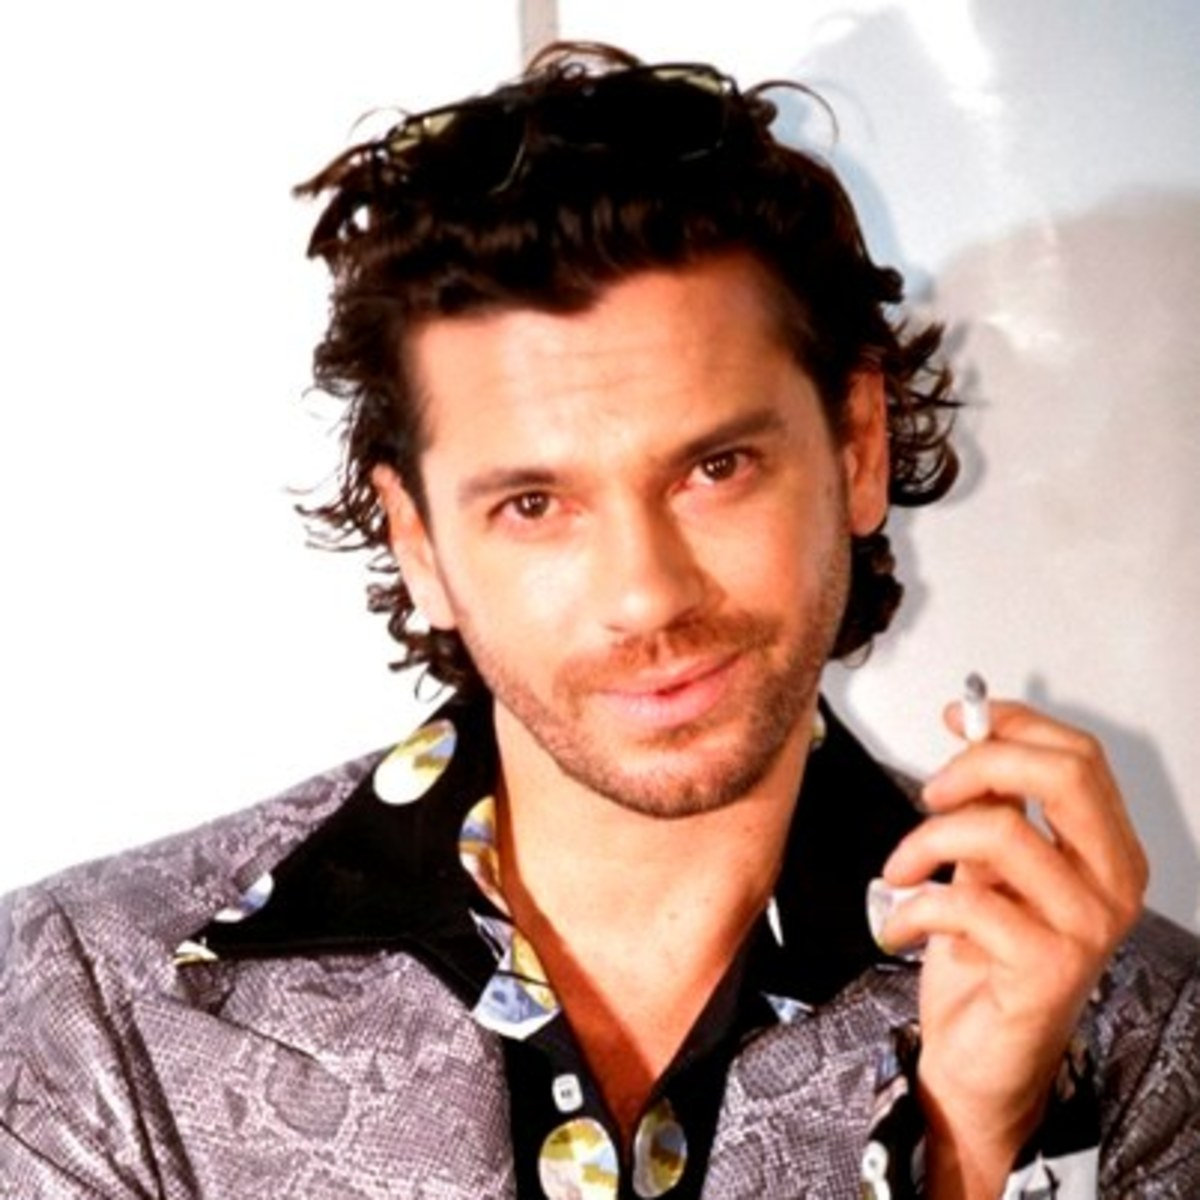 Michael hutchence singer biography nvjuhfo Gallery